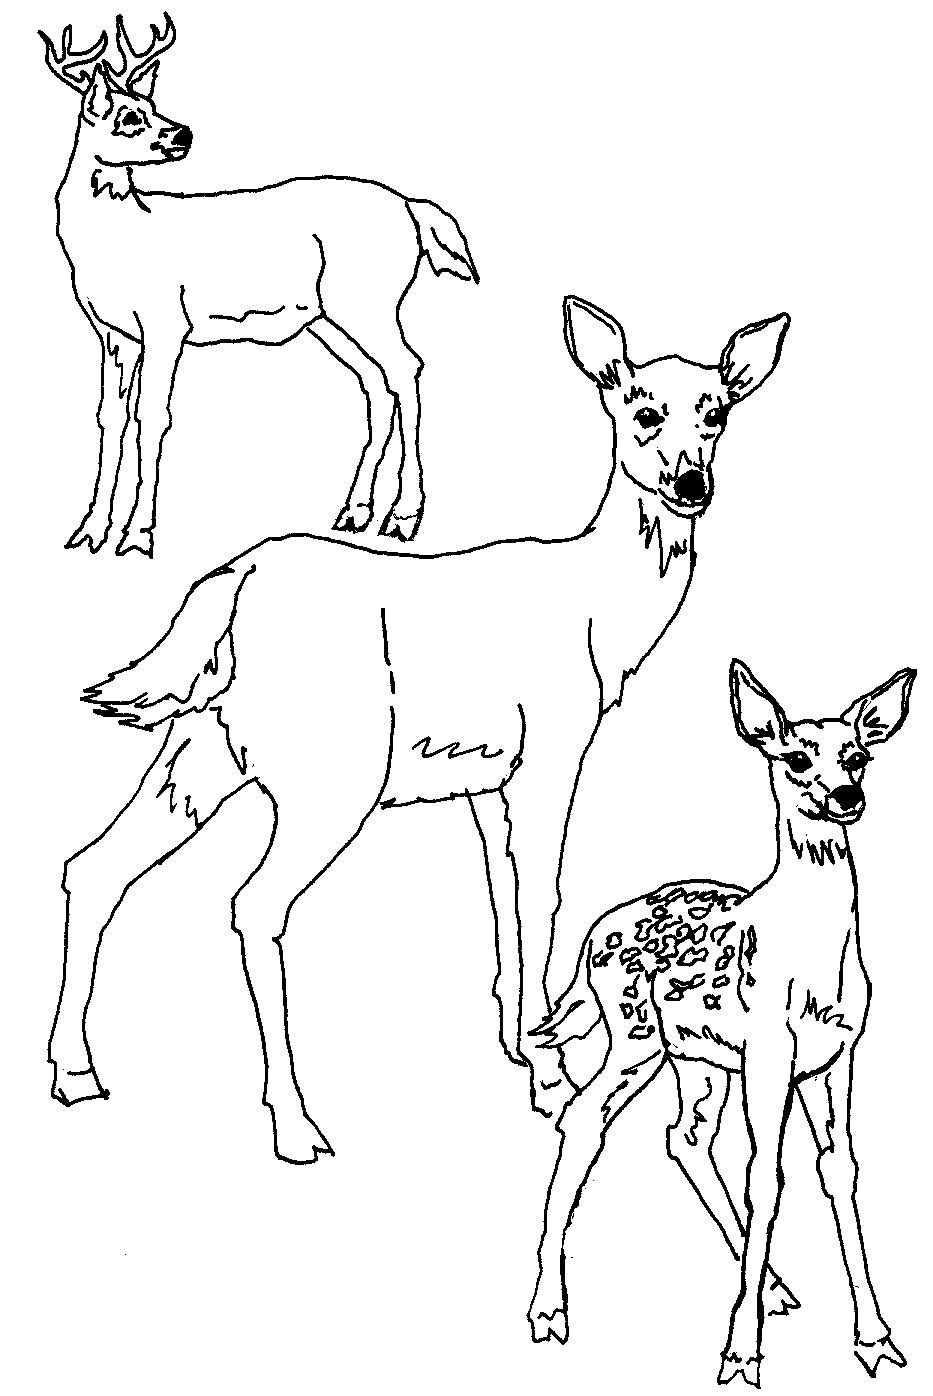 The gruffalo colouring pages to print - White Tailed Deer Coloring Page